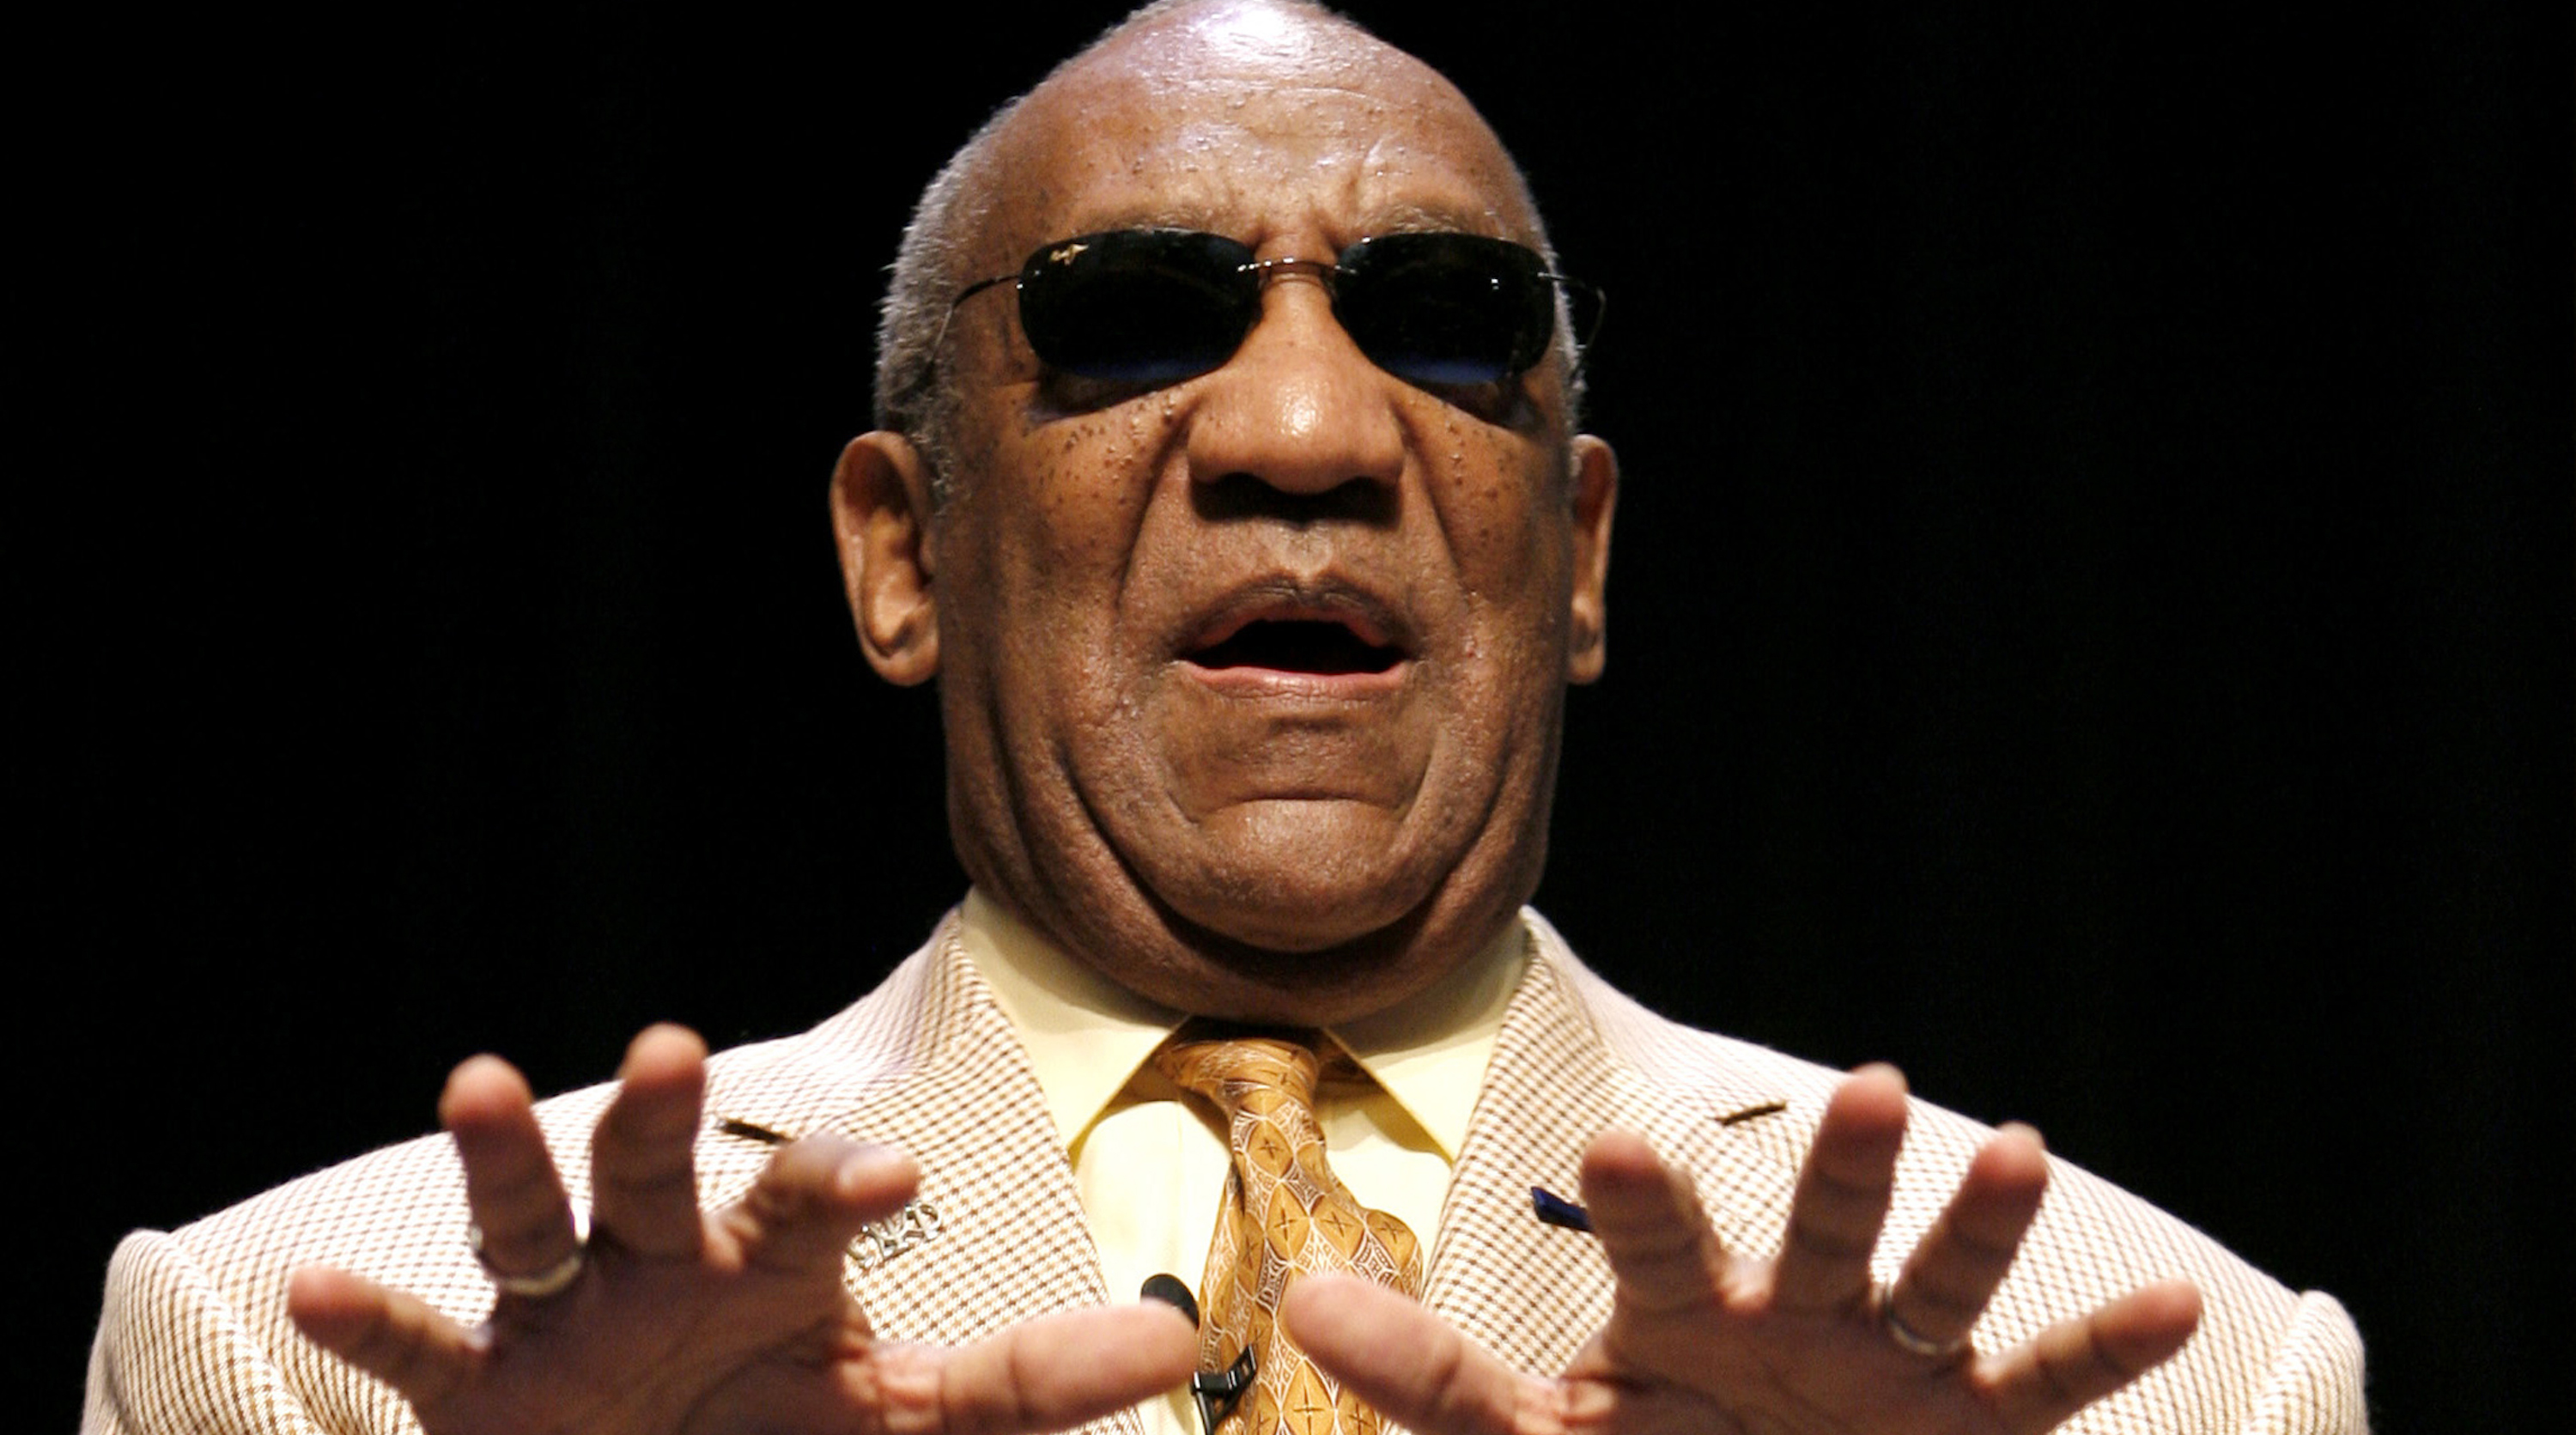 Actor, comedian and author Cosby speaks at the Children's Defense Fund's National Summit at Howard University in Washington